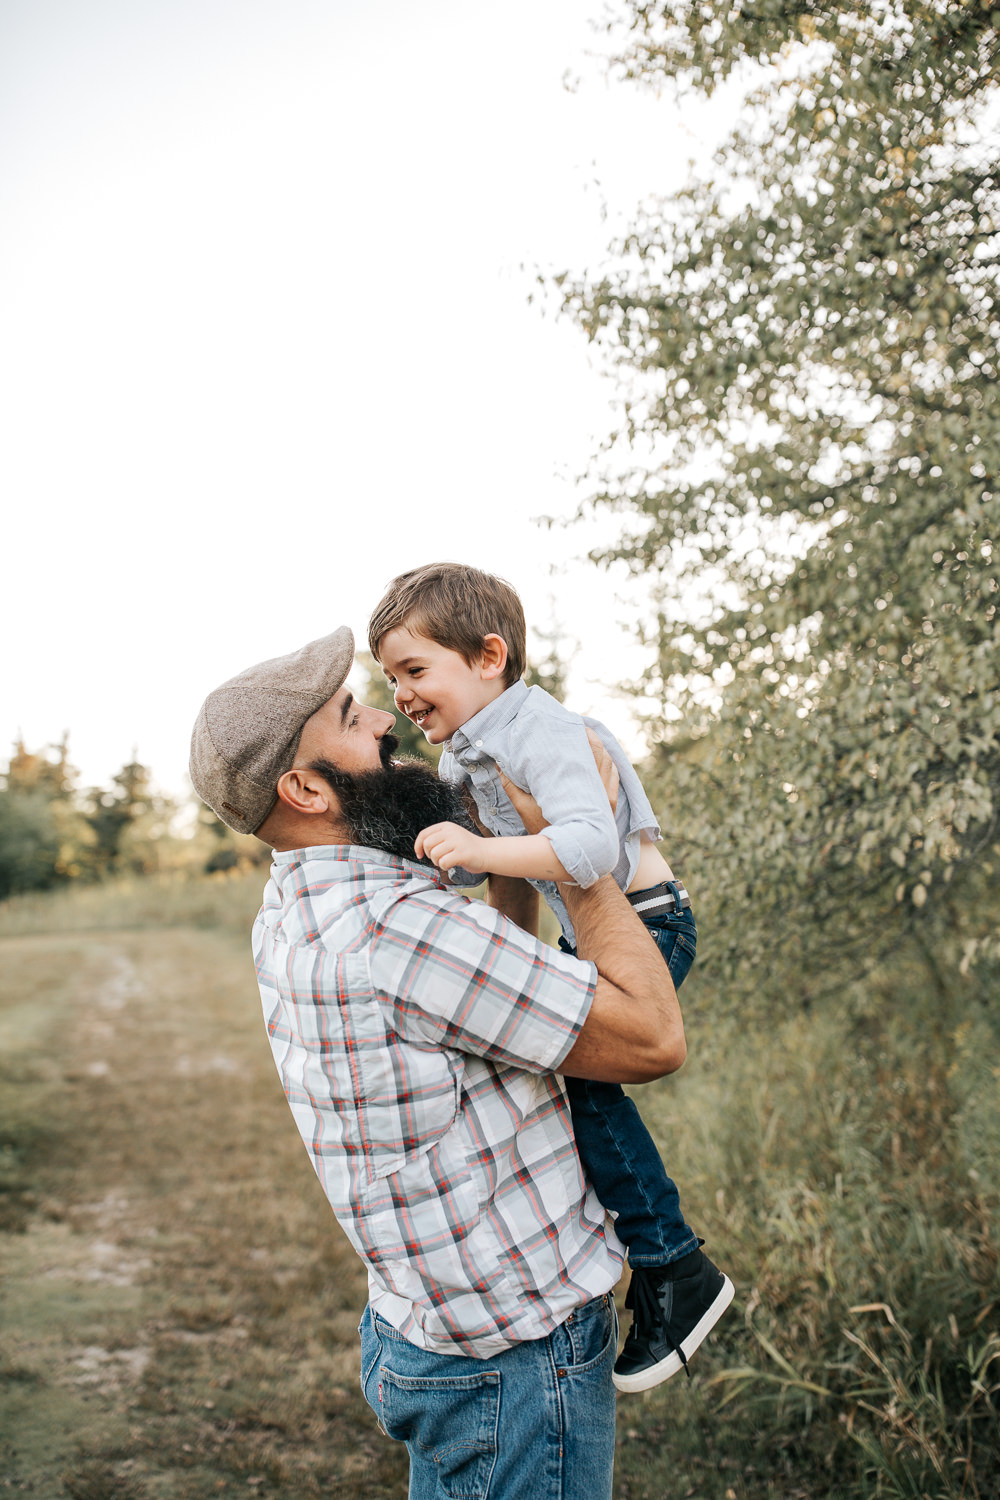 father standing in field holding 4 year old boy in his arms up in the air, face to face, son laughing and smiling at dad -Newmarket Lifestyle Photography